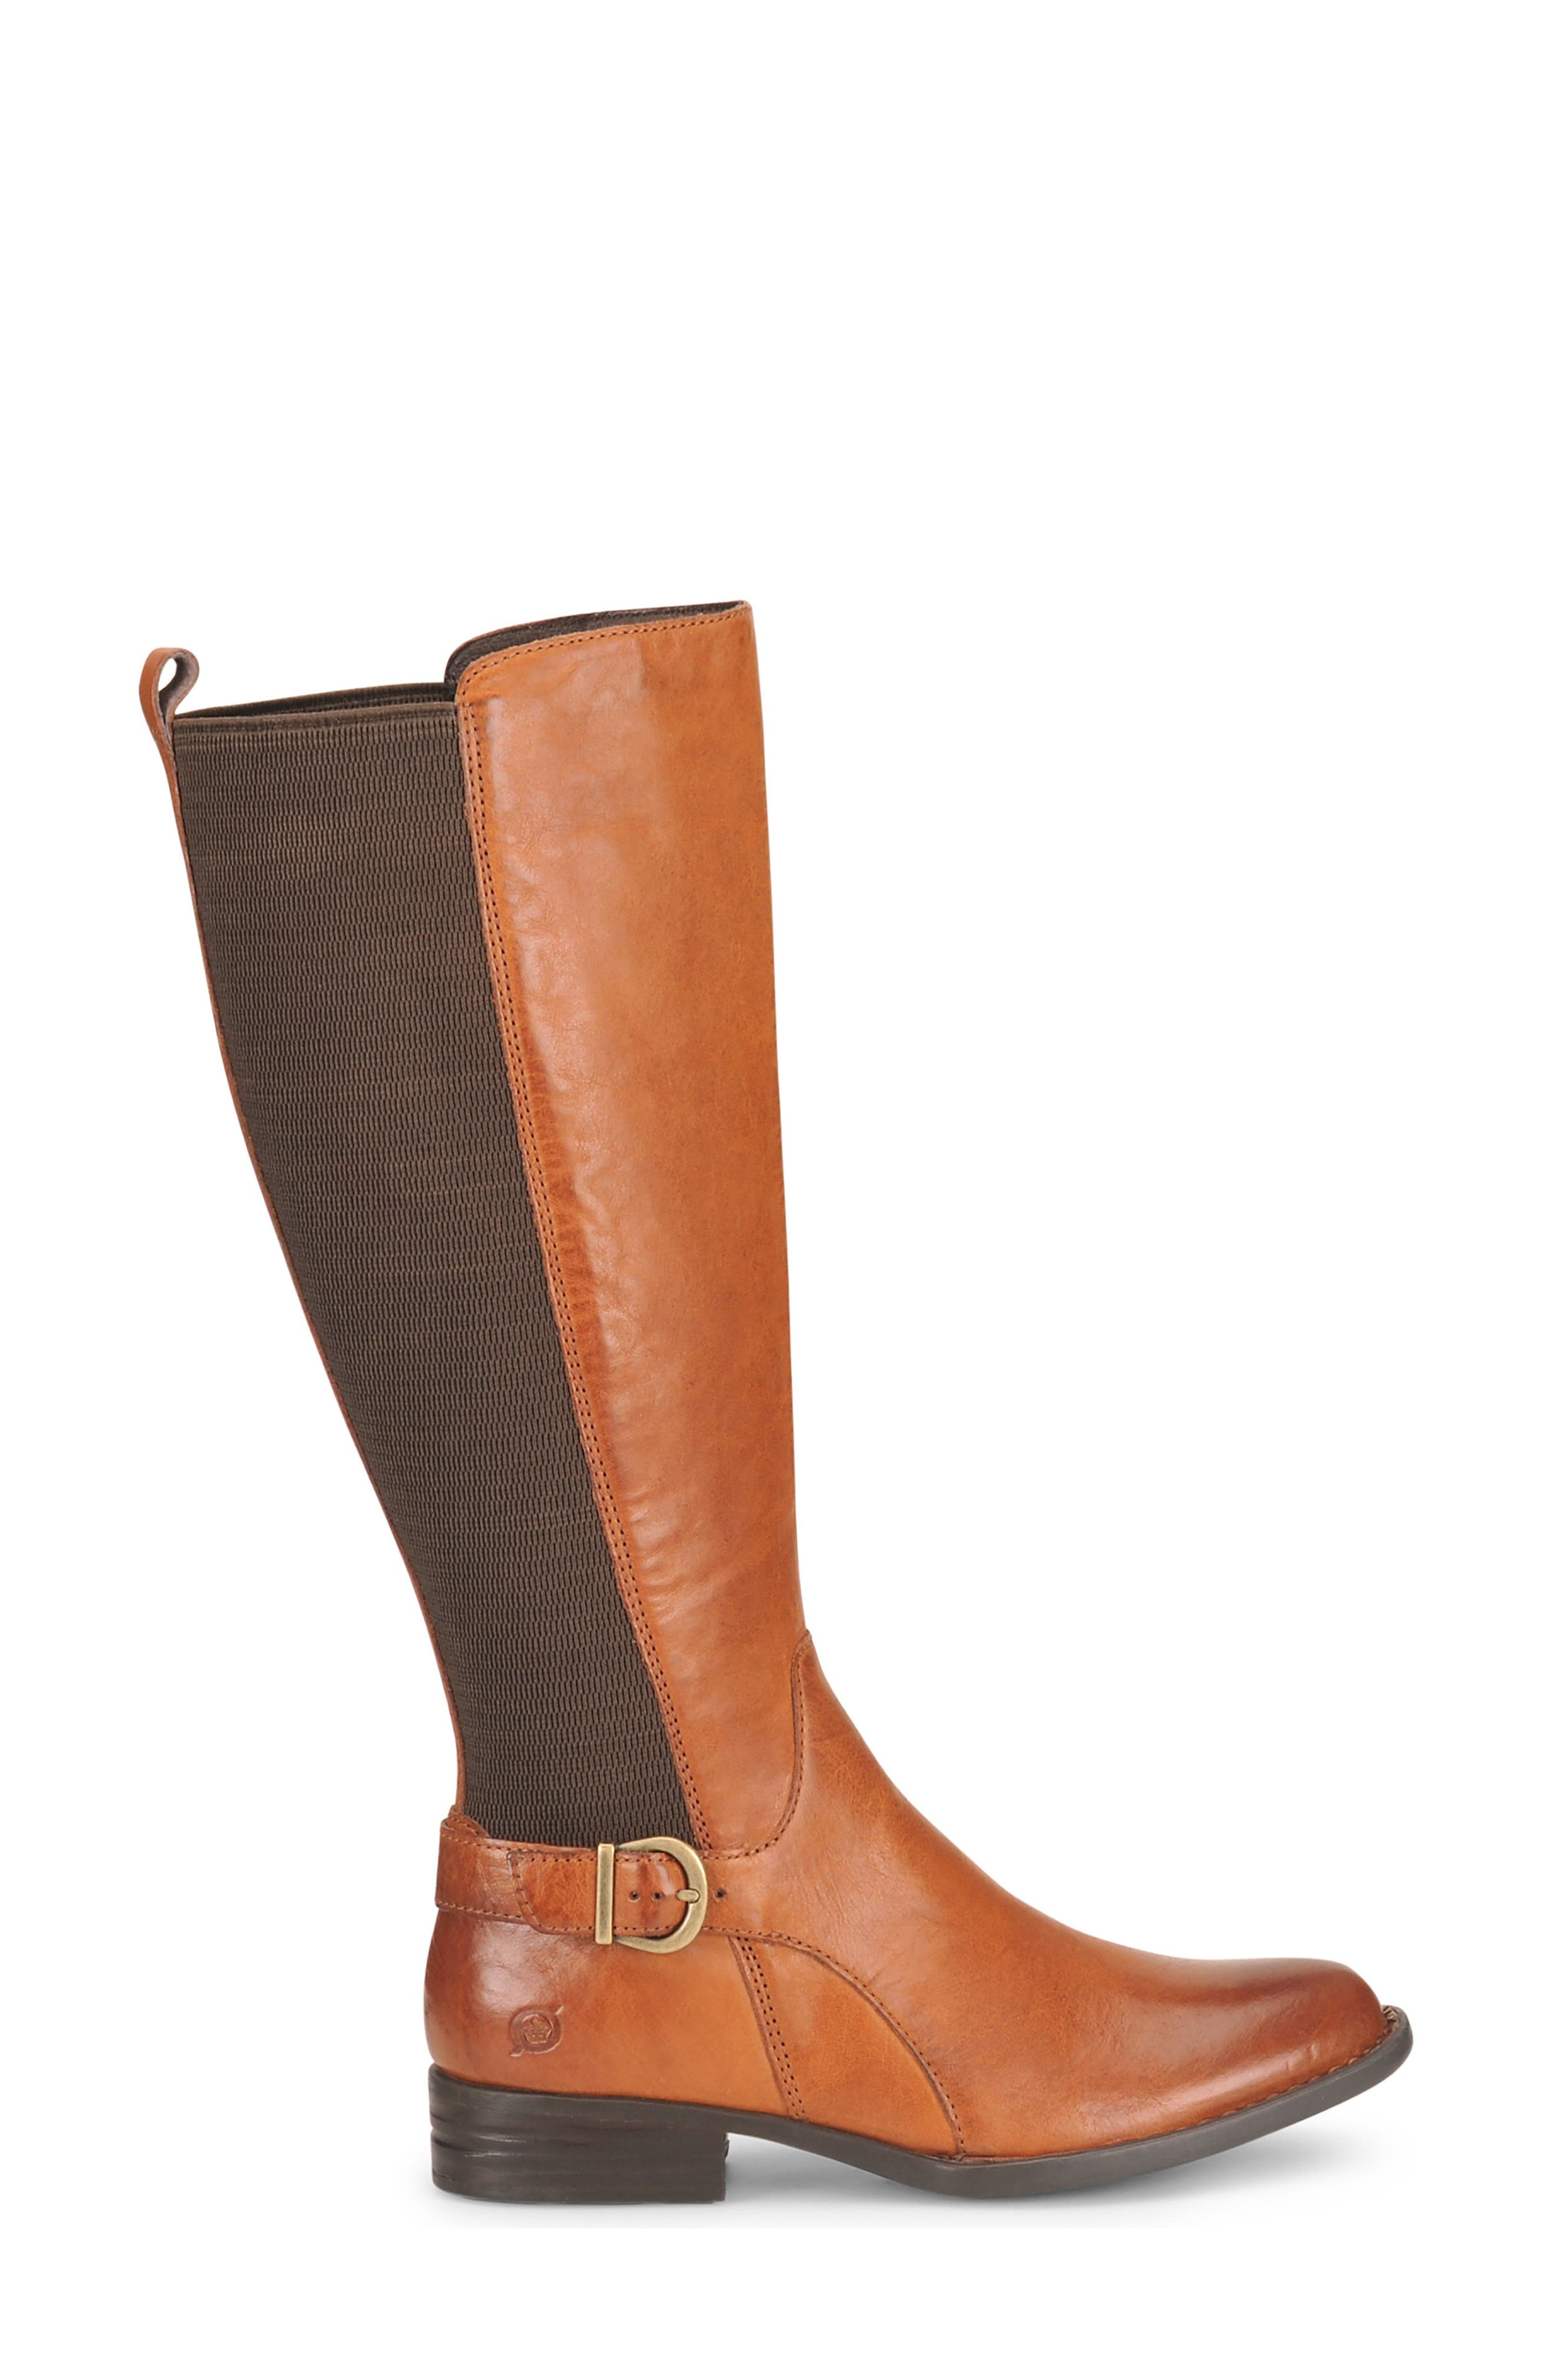 Campbell Knee High Elastic Back Boot,                             Alternate thumbnail 3, color,                             Tan Leather